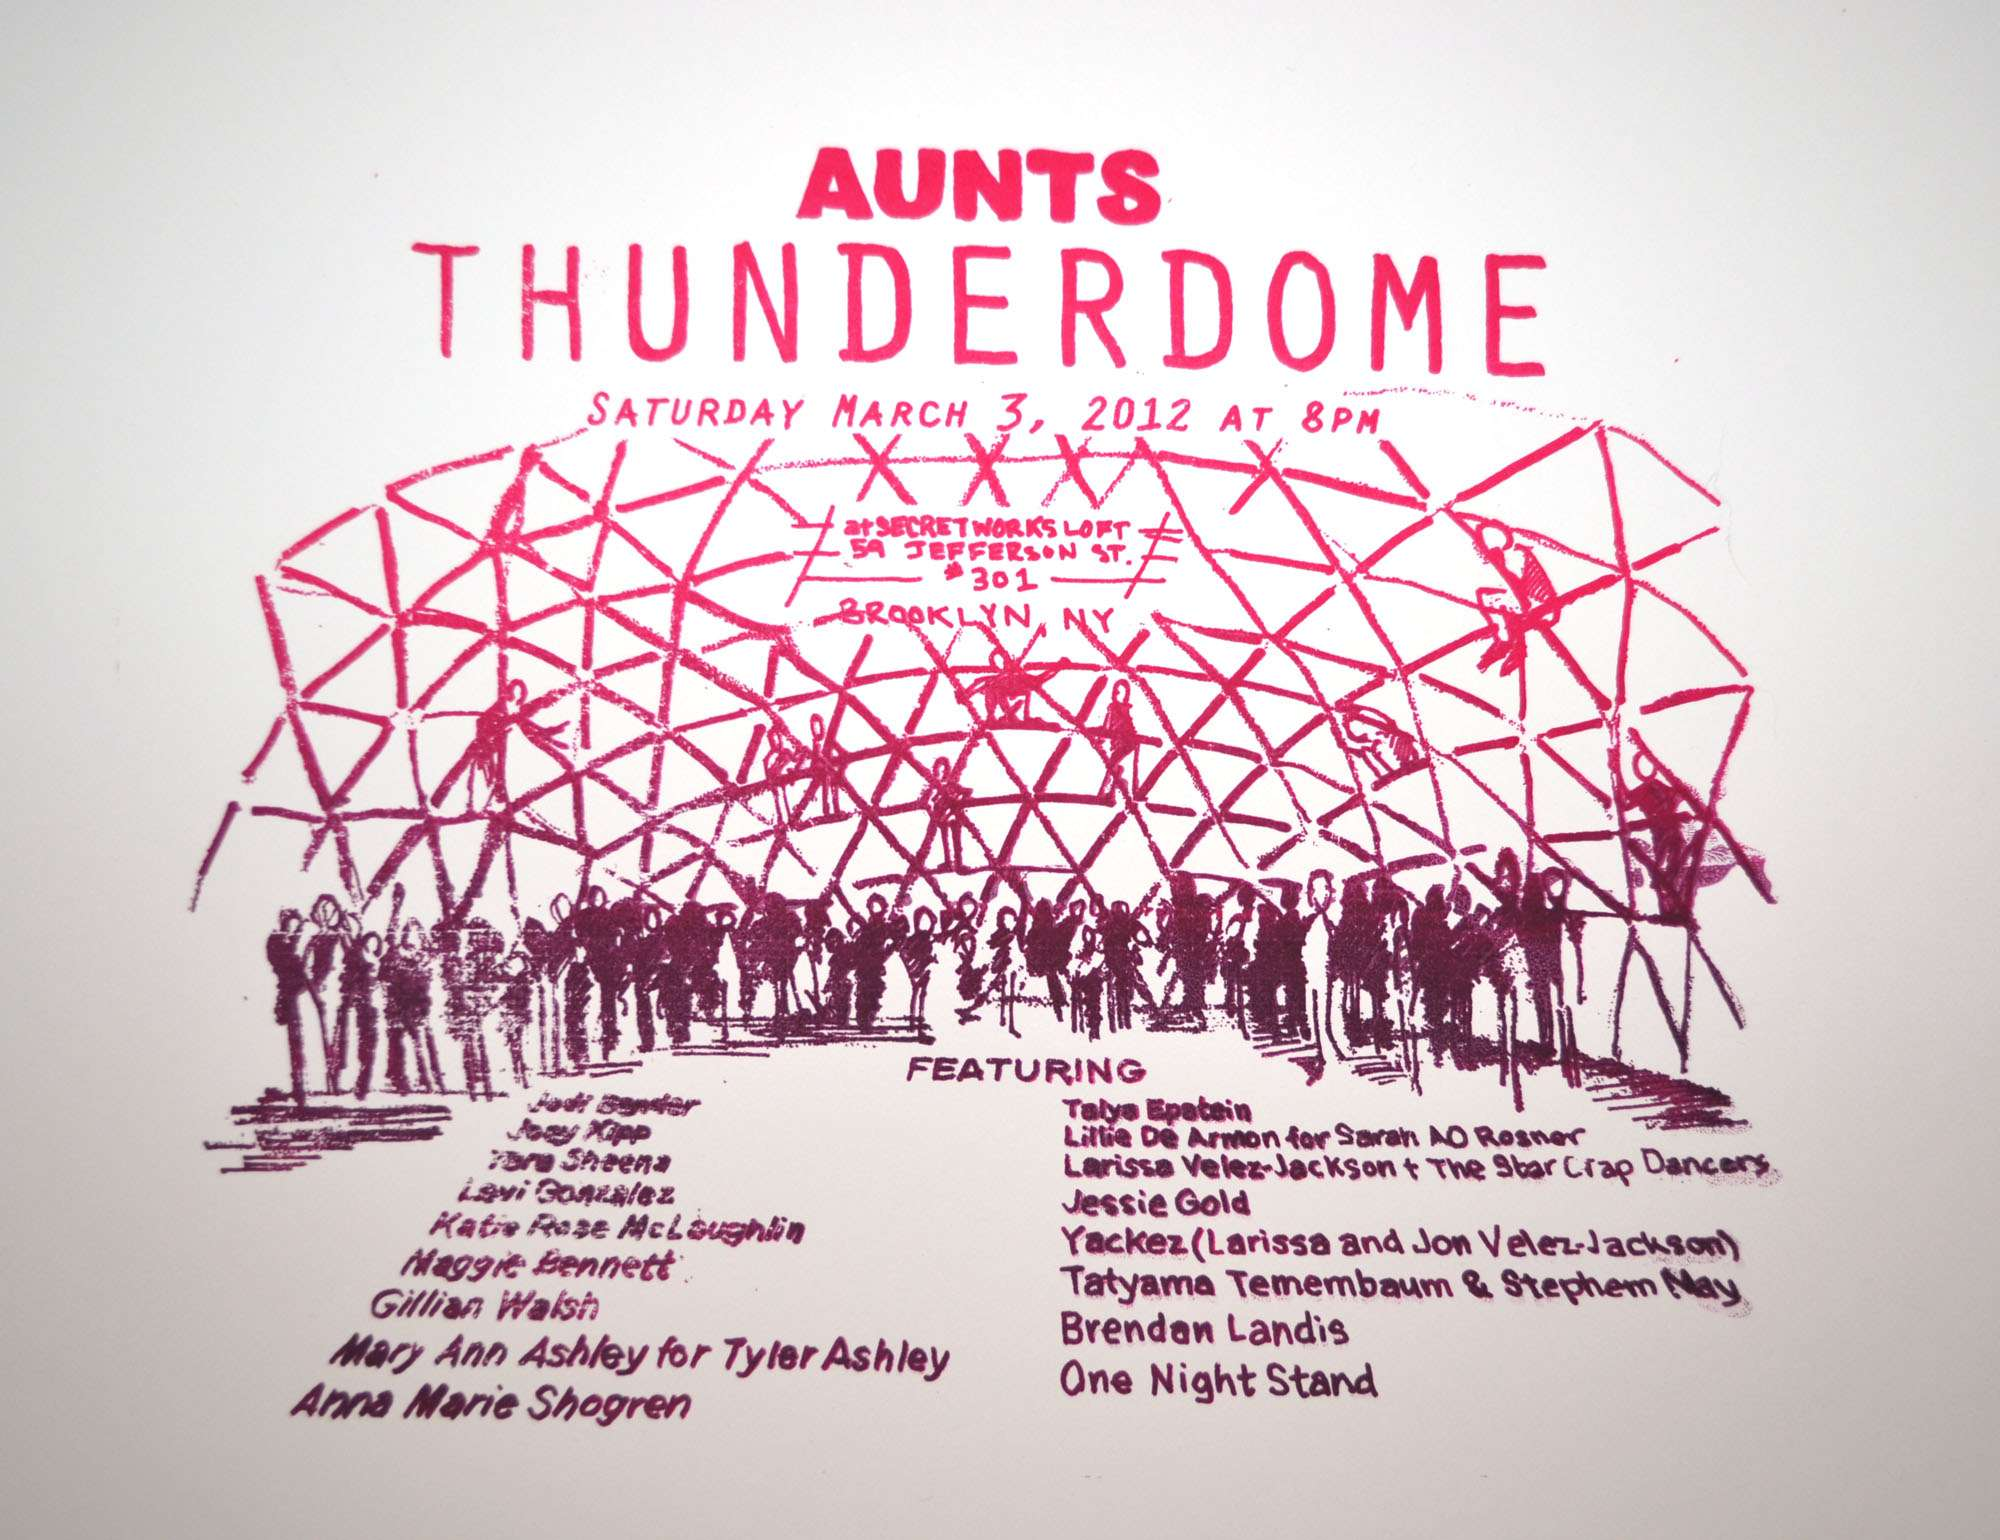 AUNTS thunderdome